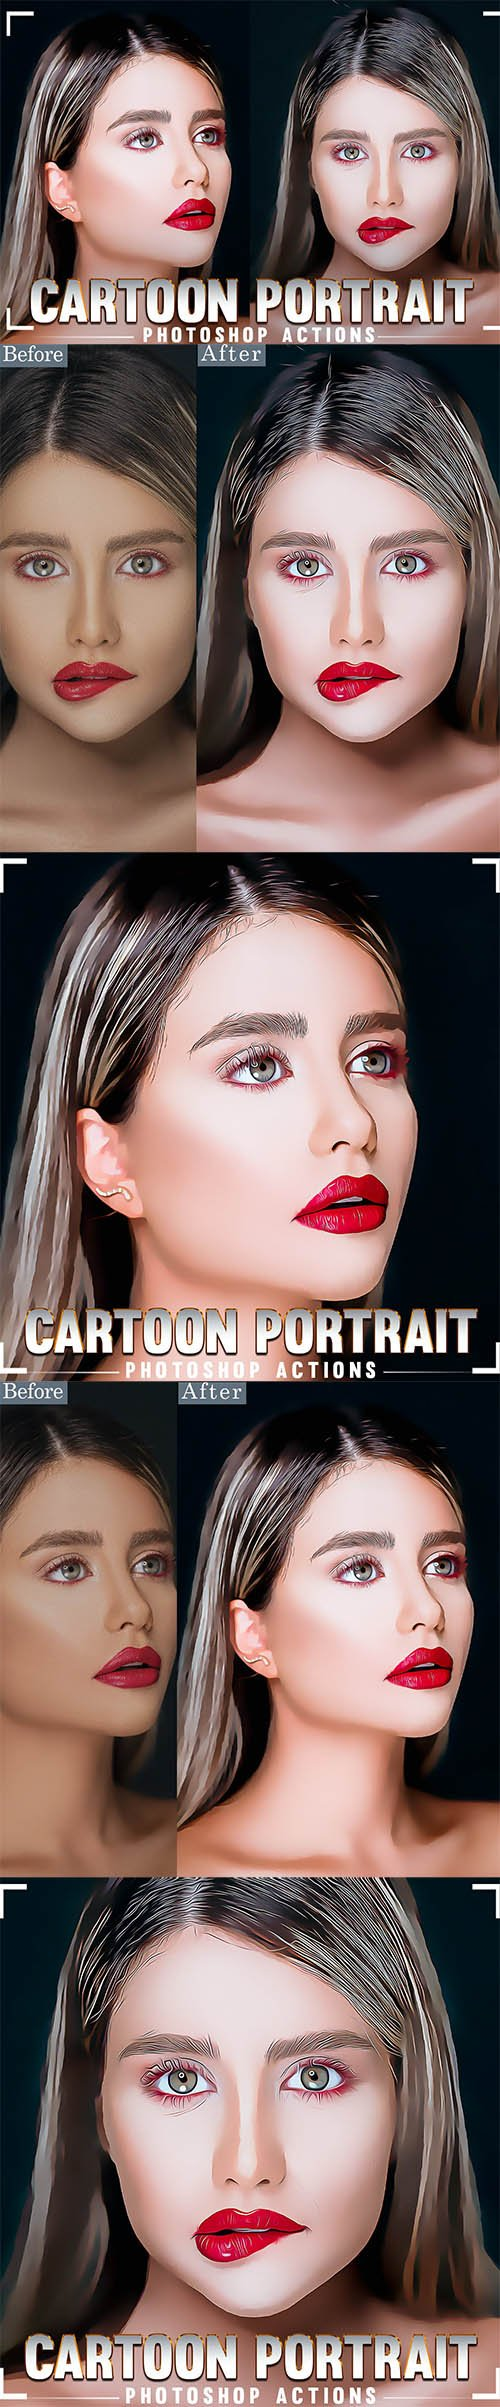 Cartoon Portrait Photoshop Action